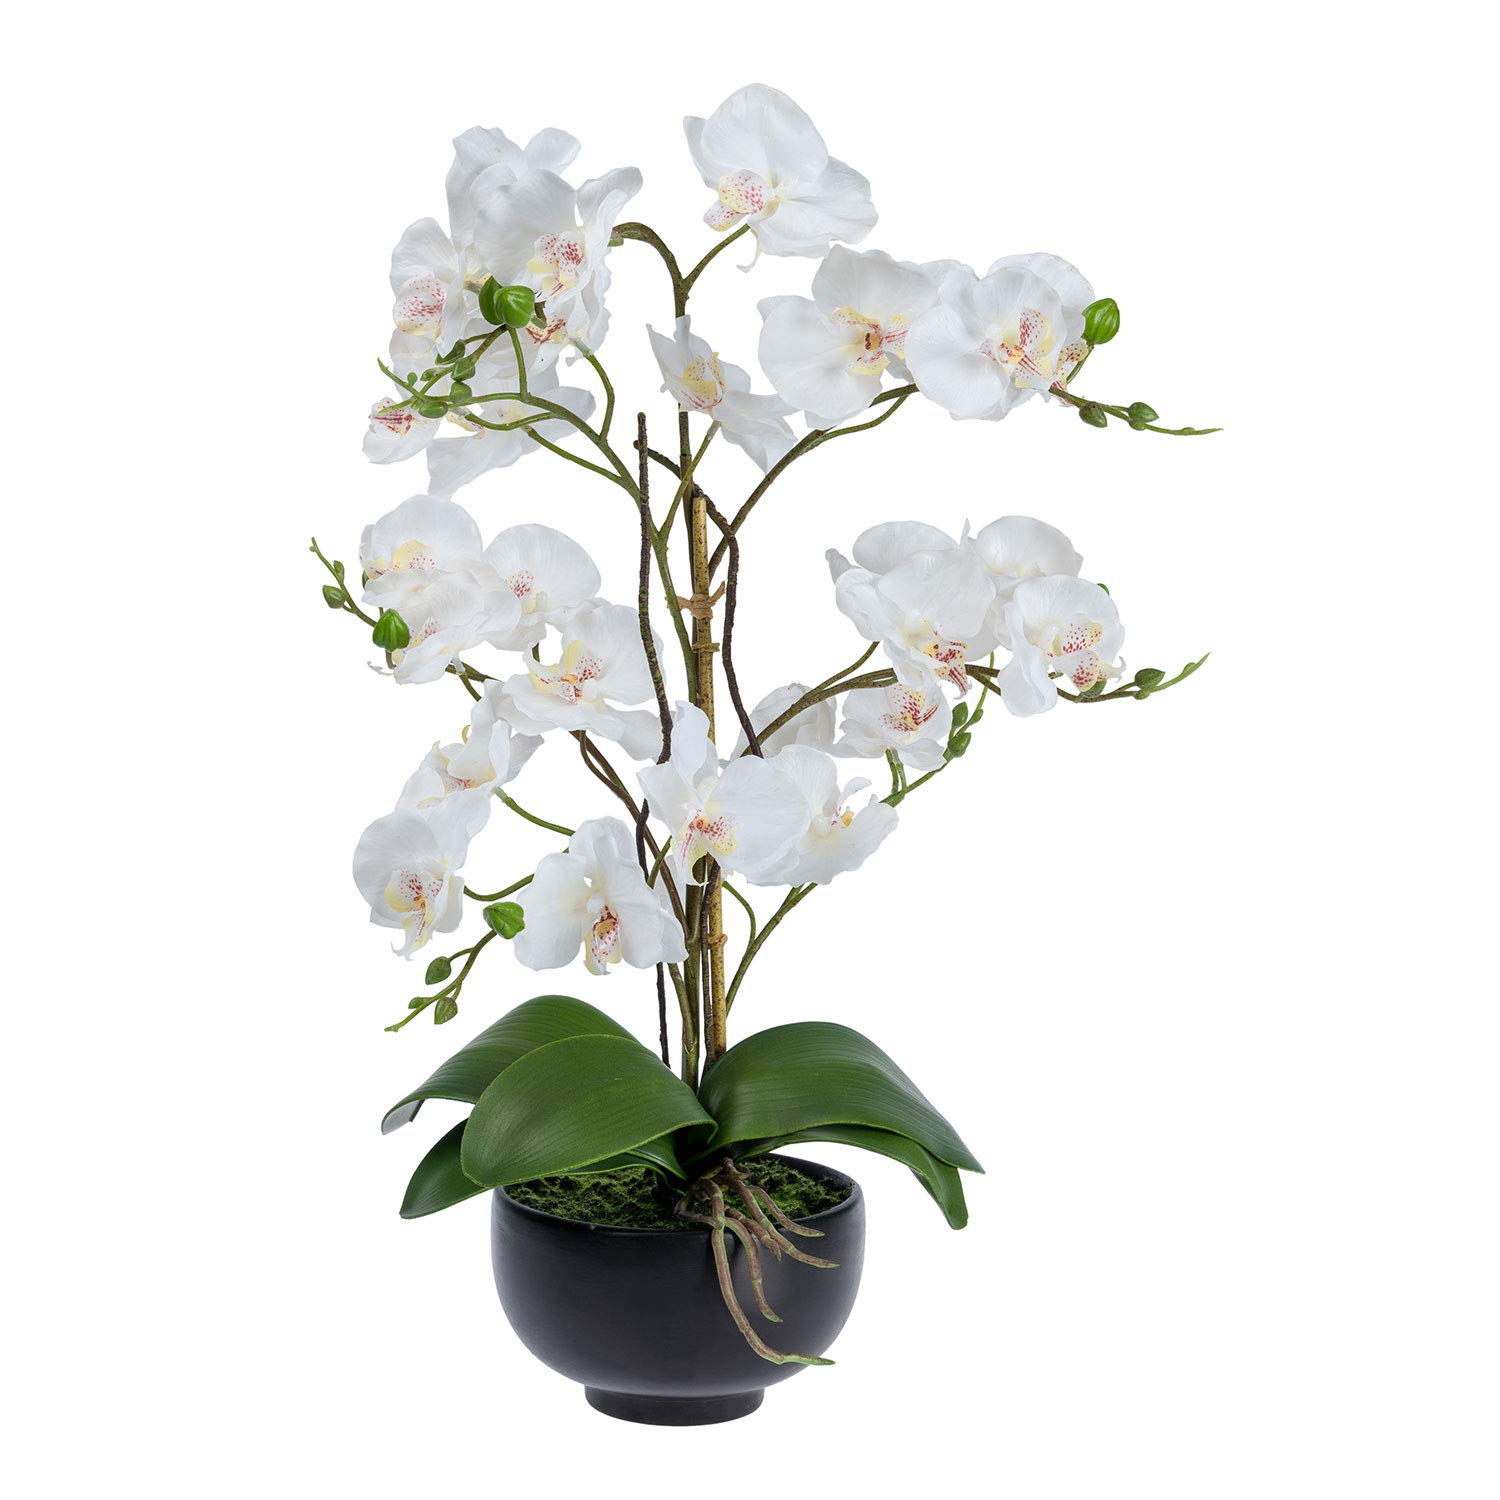 Homescapes Large White Artificial Orchid with Lifelike Silk Flowers and Realistic Green Leaves Oriental Phalaenopsis Orchid Flower in Round Mat Black Planter Pot 60cm Tall for Indoor Decoration